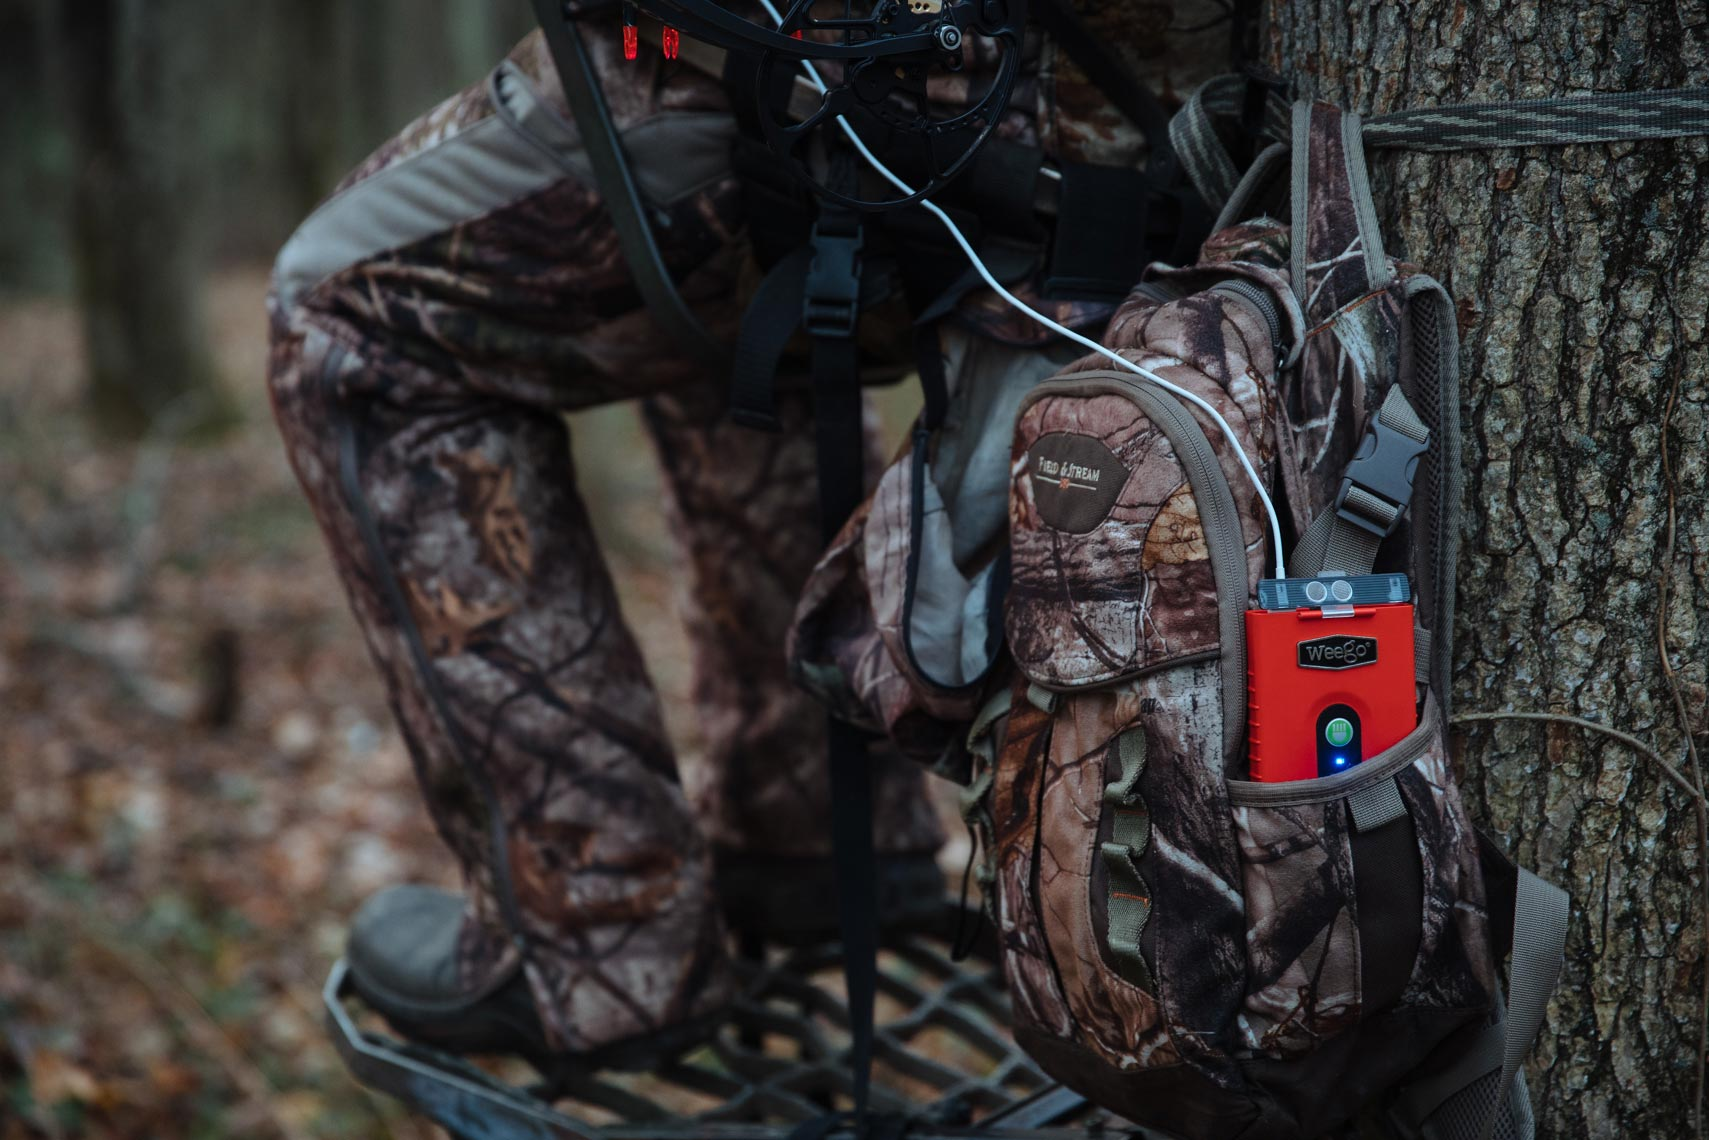 Portable battery in use by a hunter